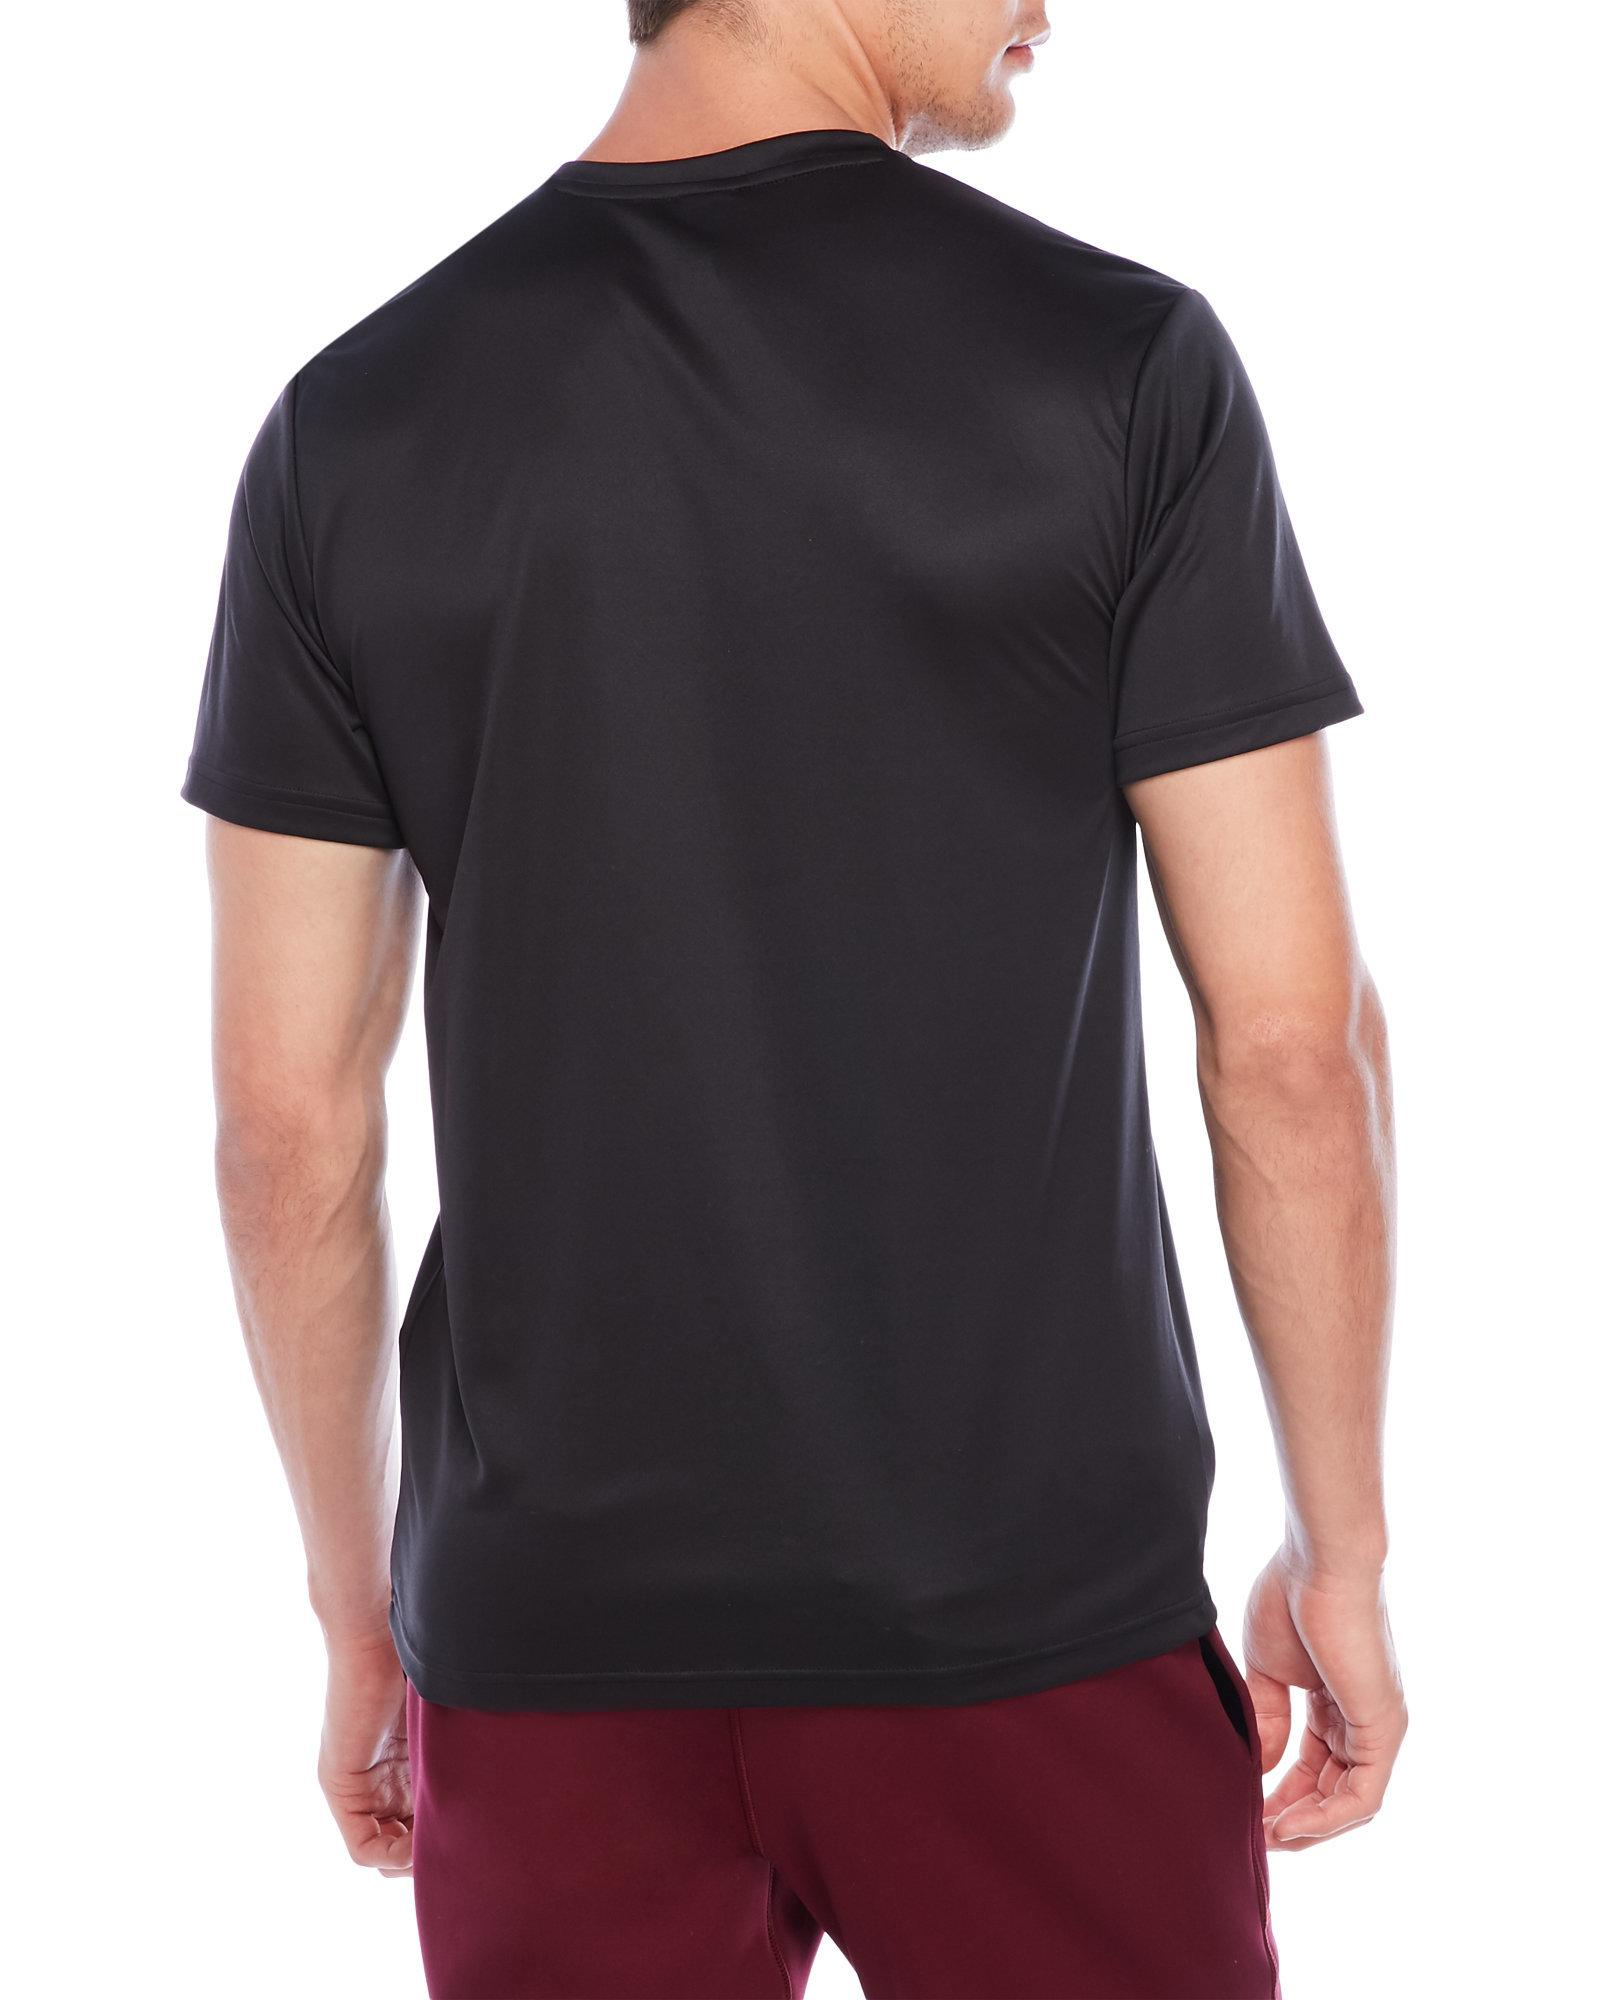 aa2423bca5d67 Lyst - Adidas V-neck Essentials Tech Tee in Black for Men